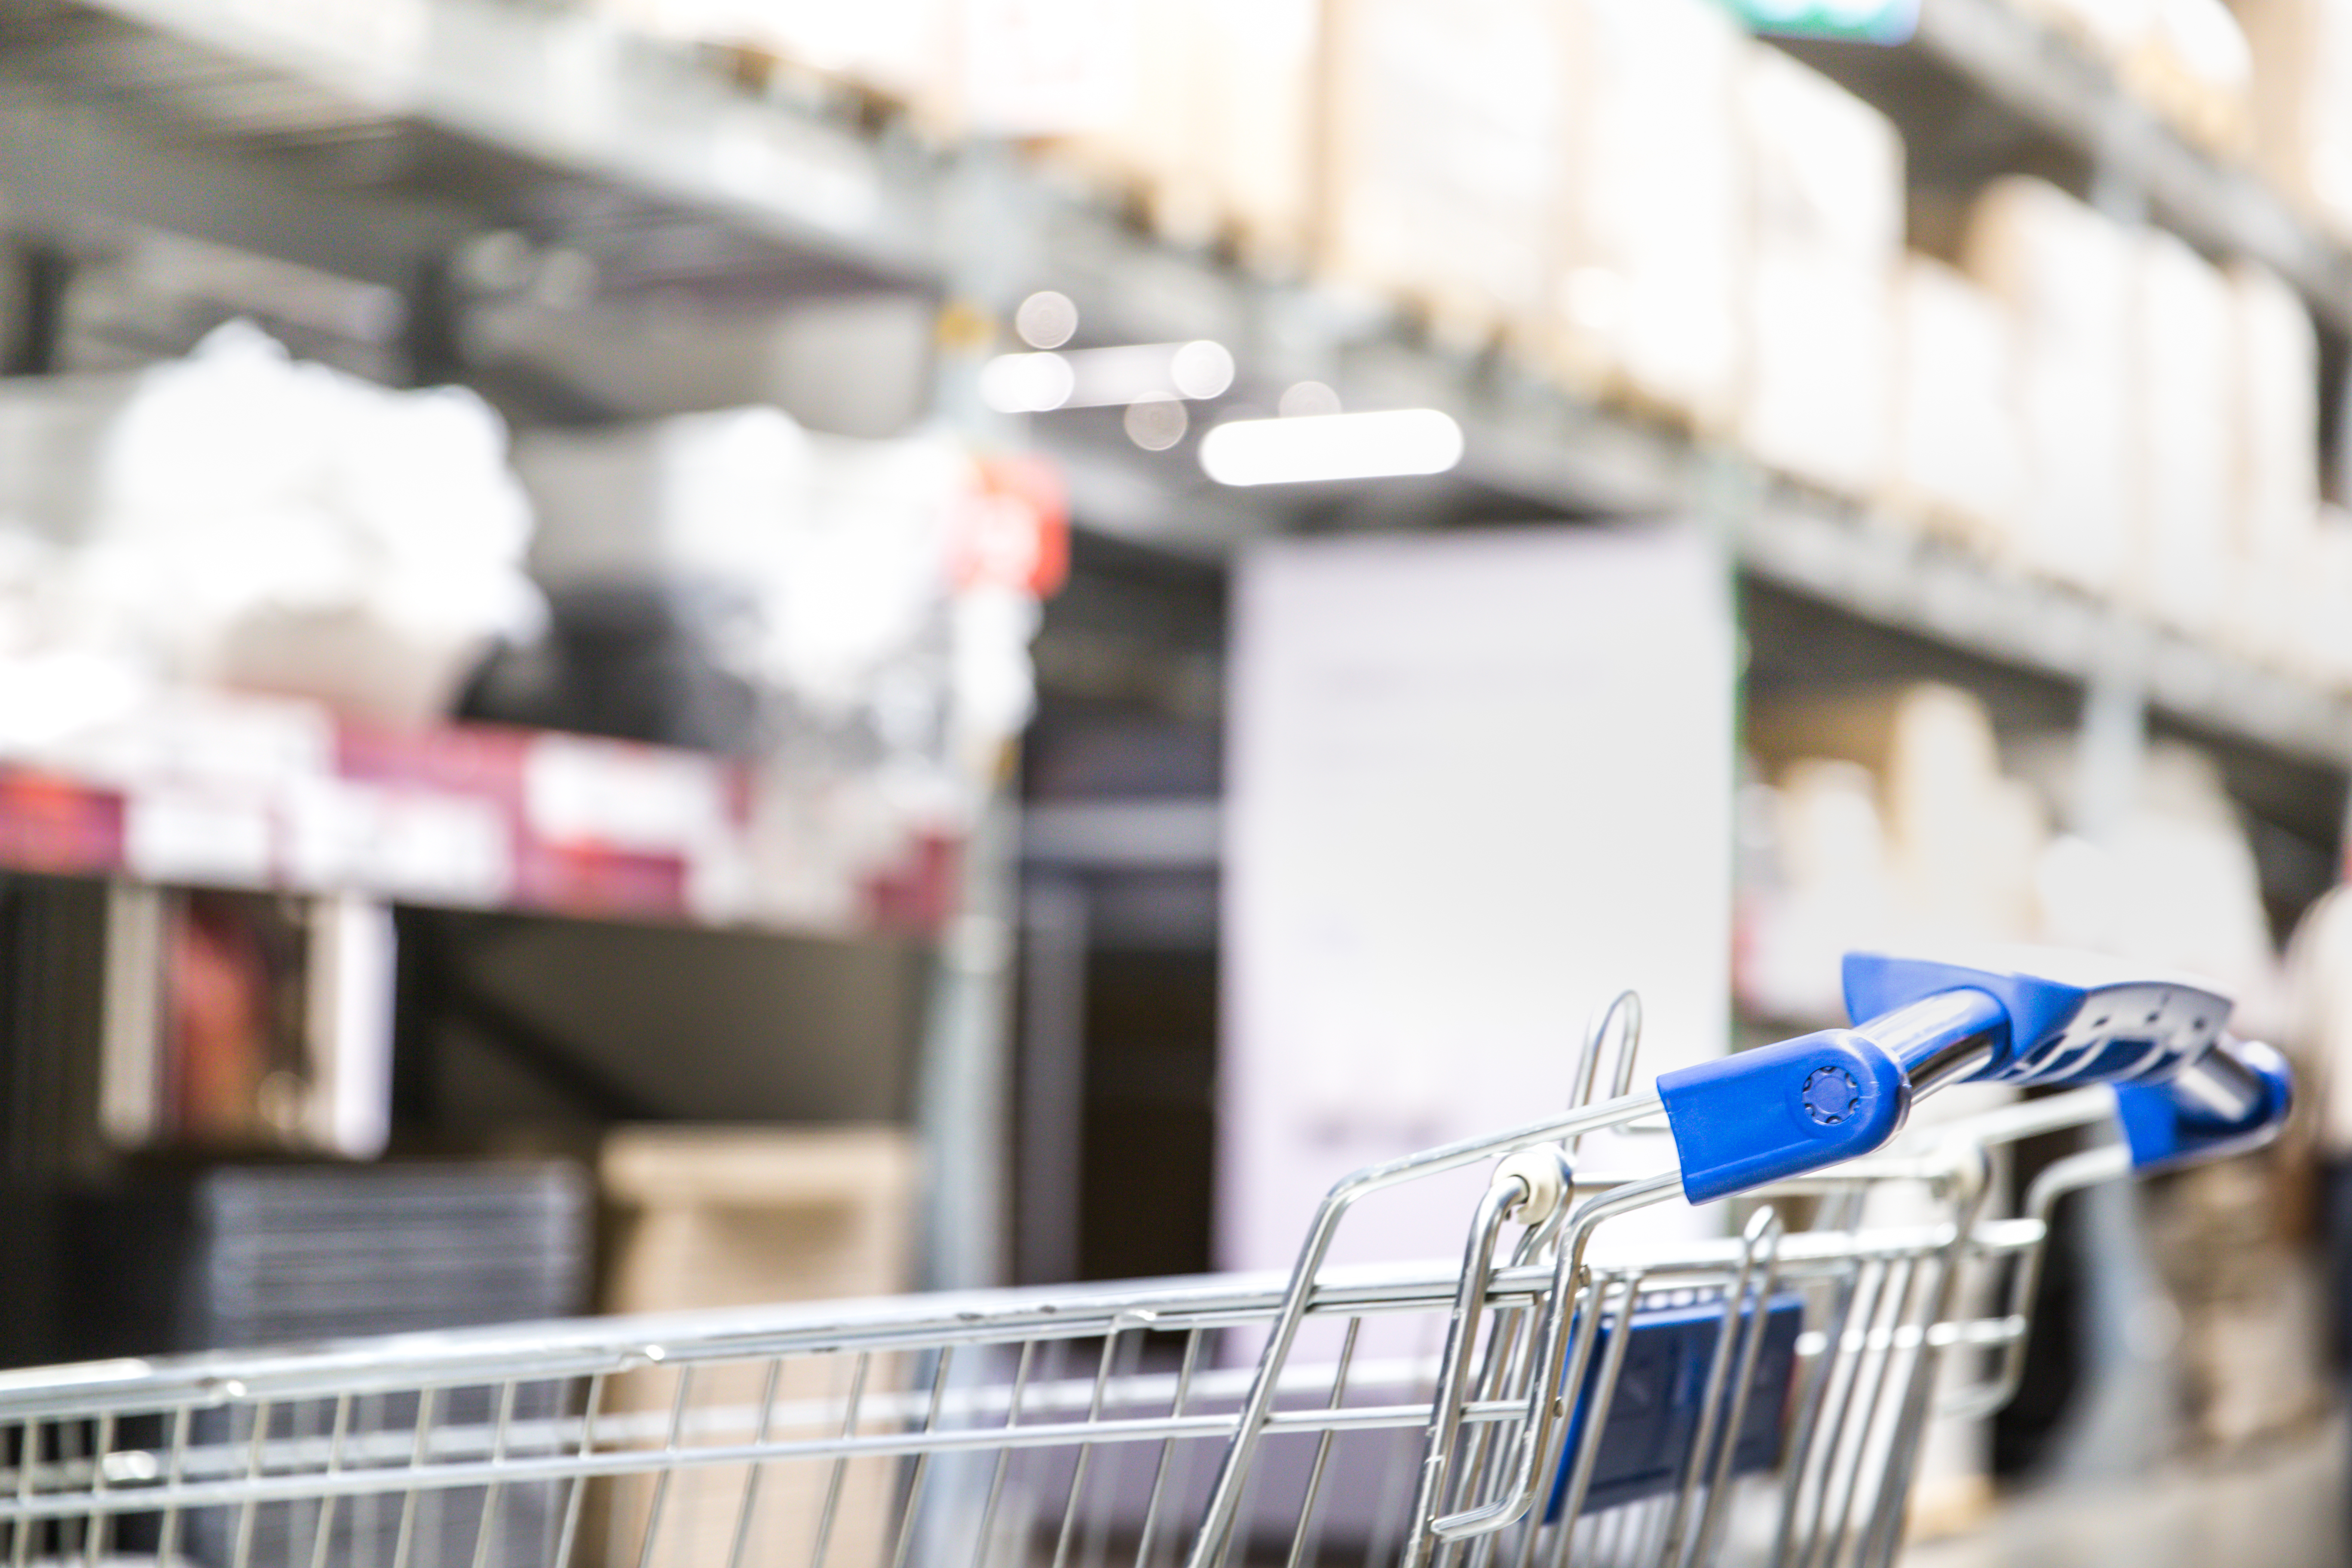 WHAT IS RADDLE ME AND WHY SHOULD RETAILERS CARE?